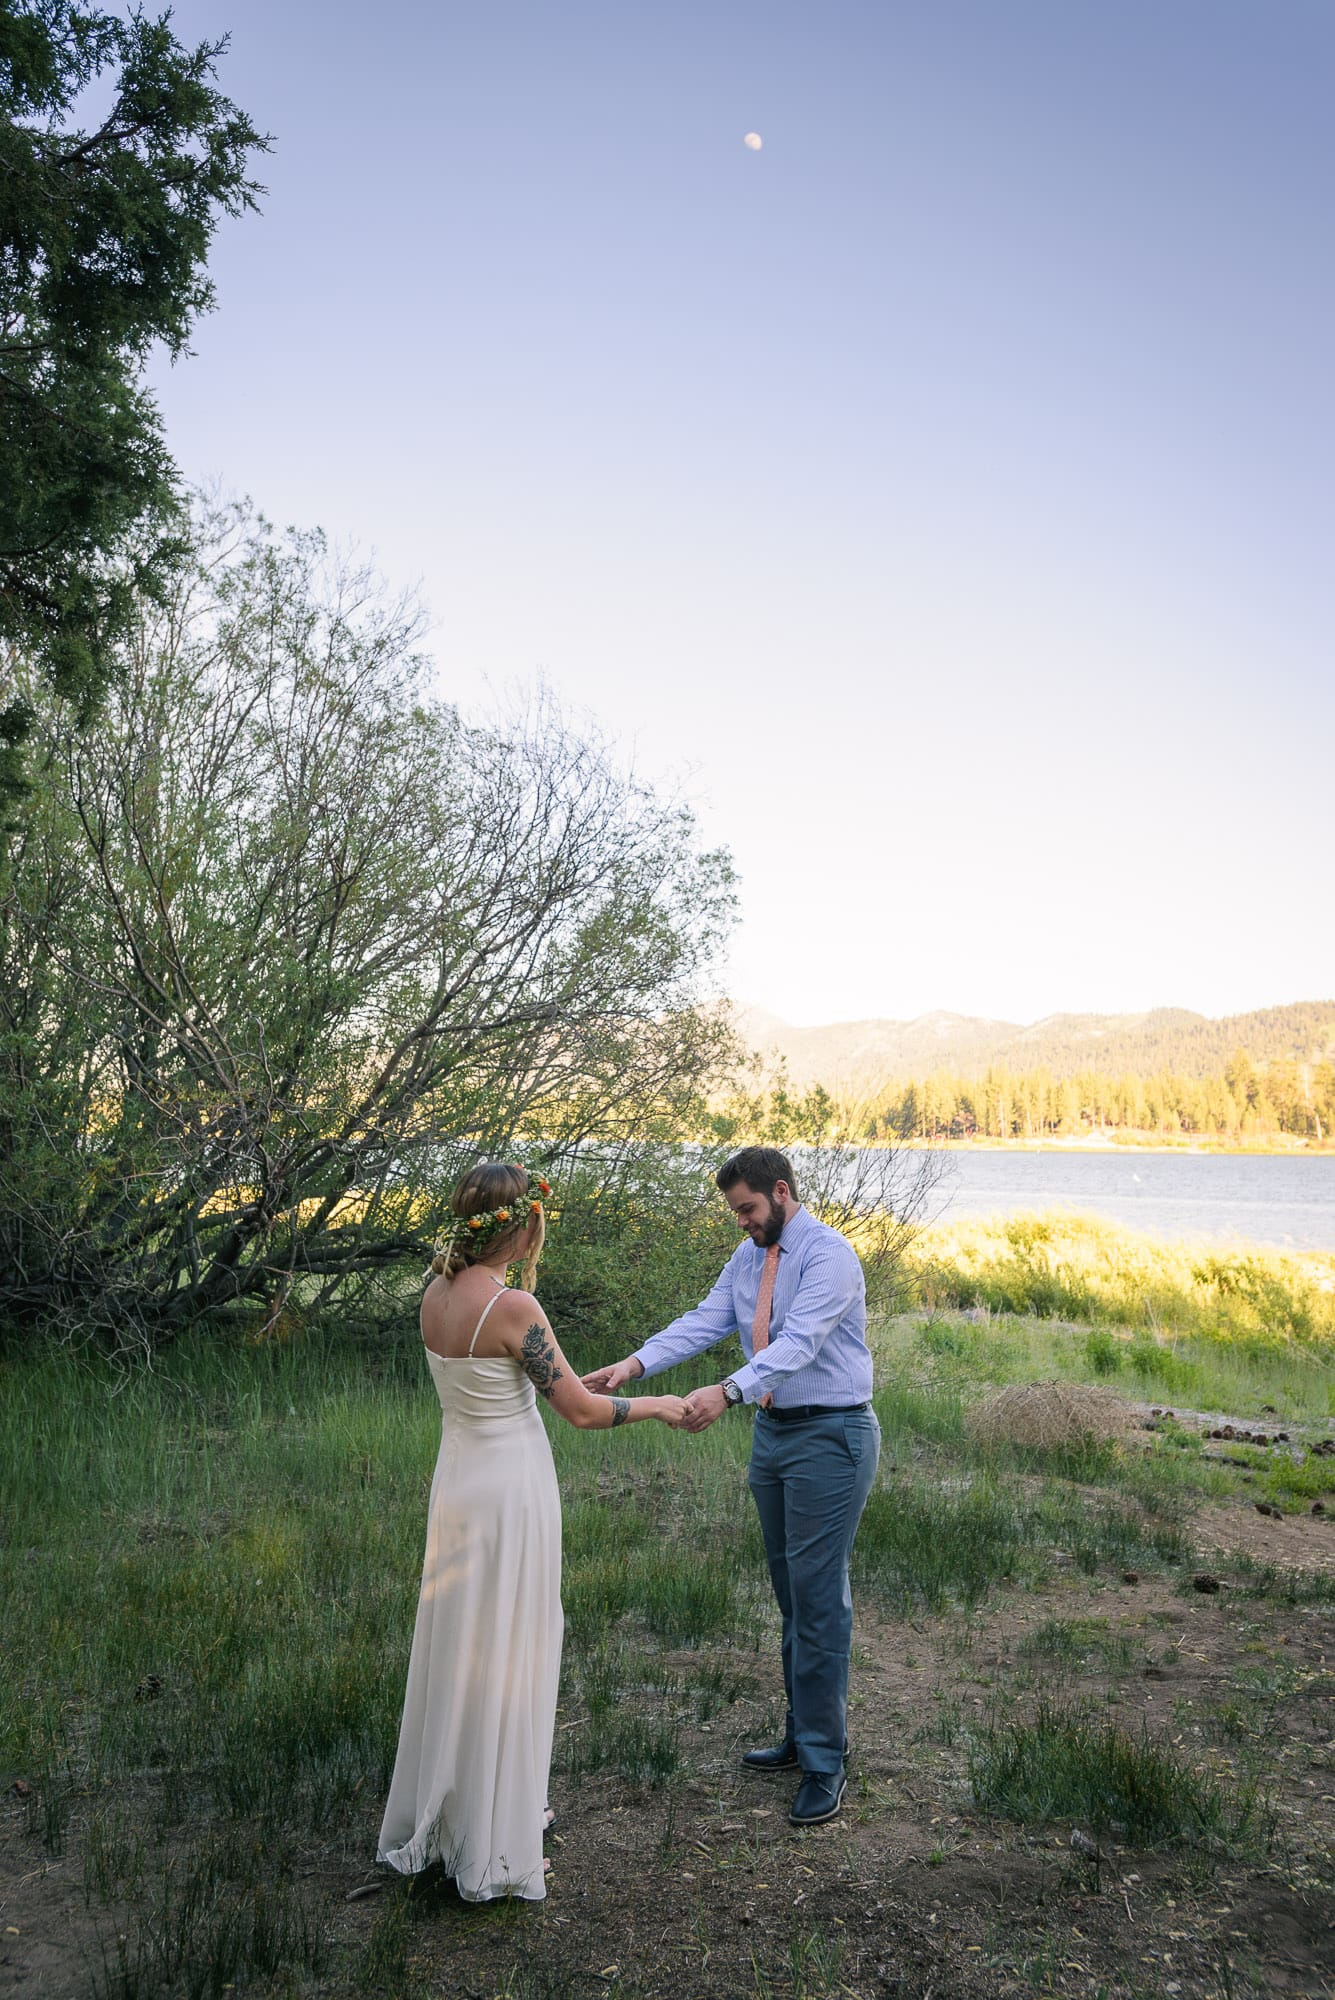 008_Alan_and_Heidi_Kensey_Josh_Big_Bear_Elopement